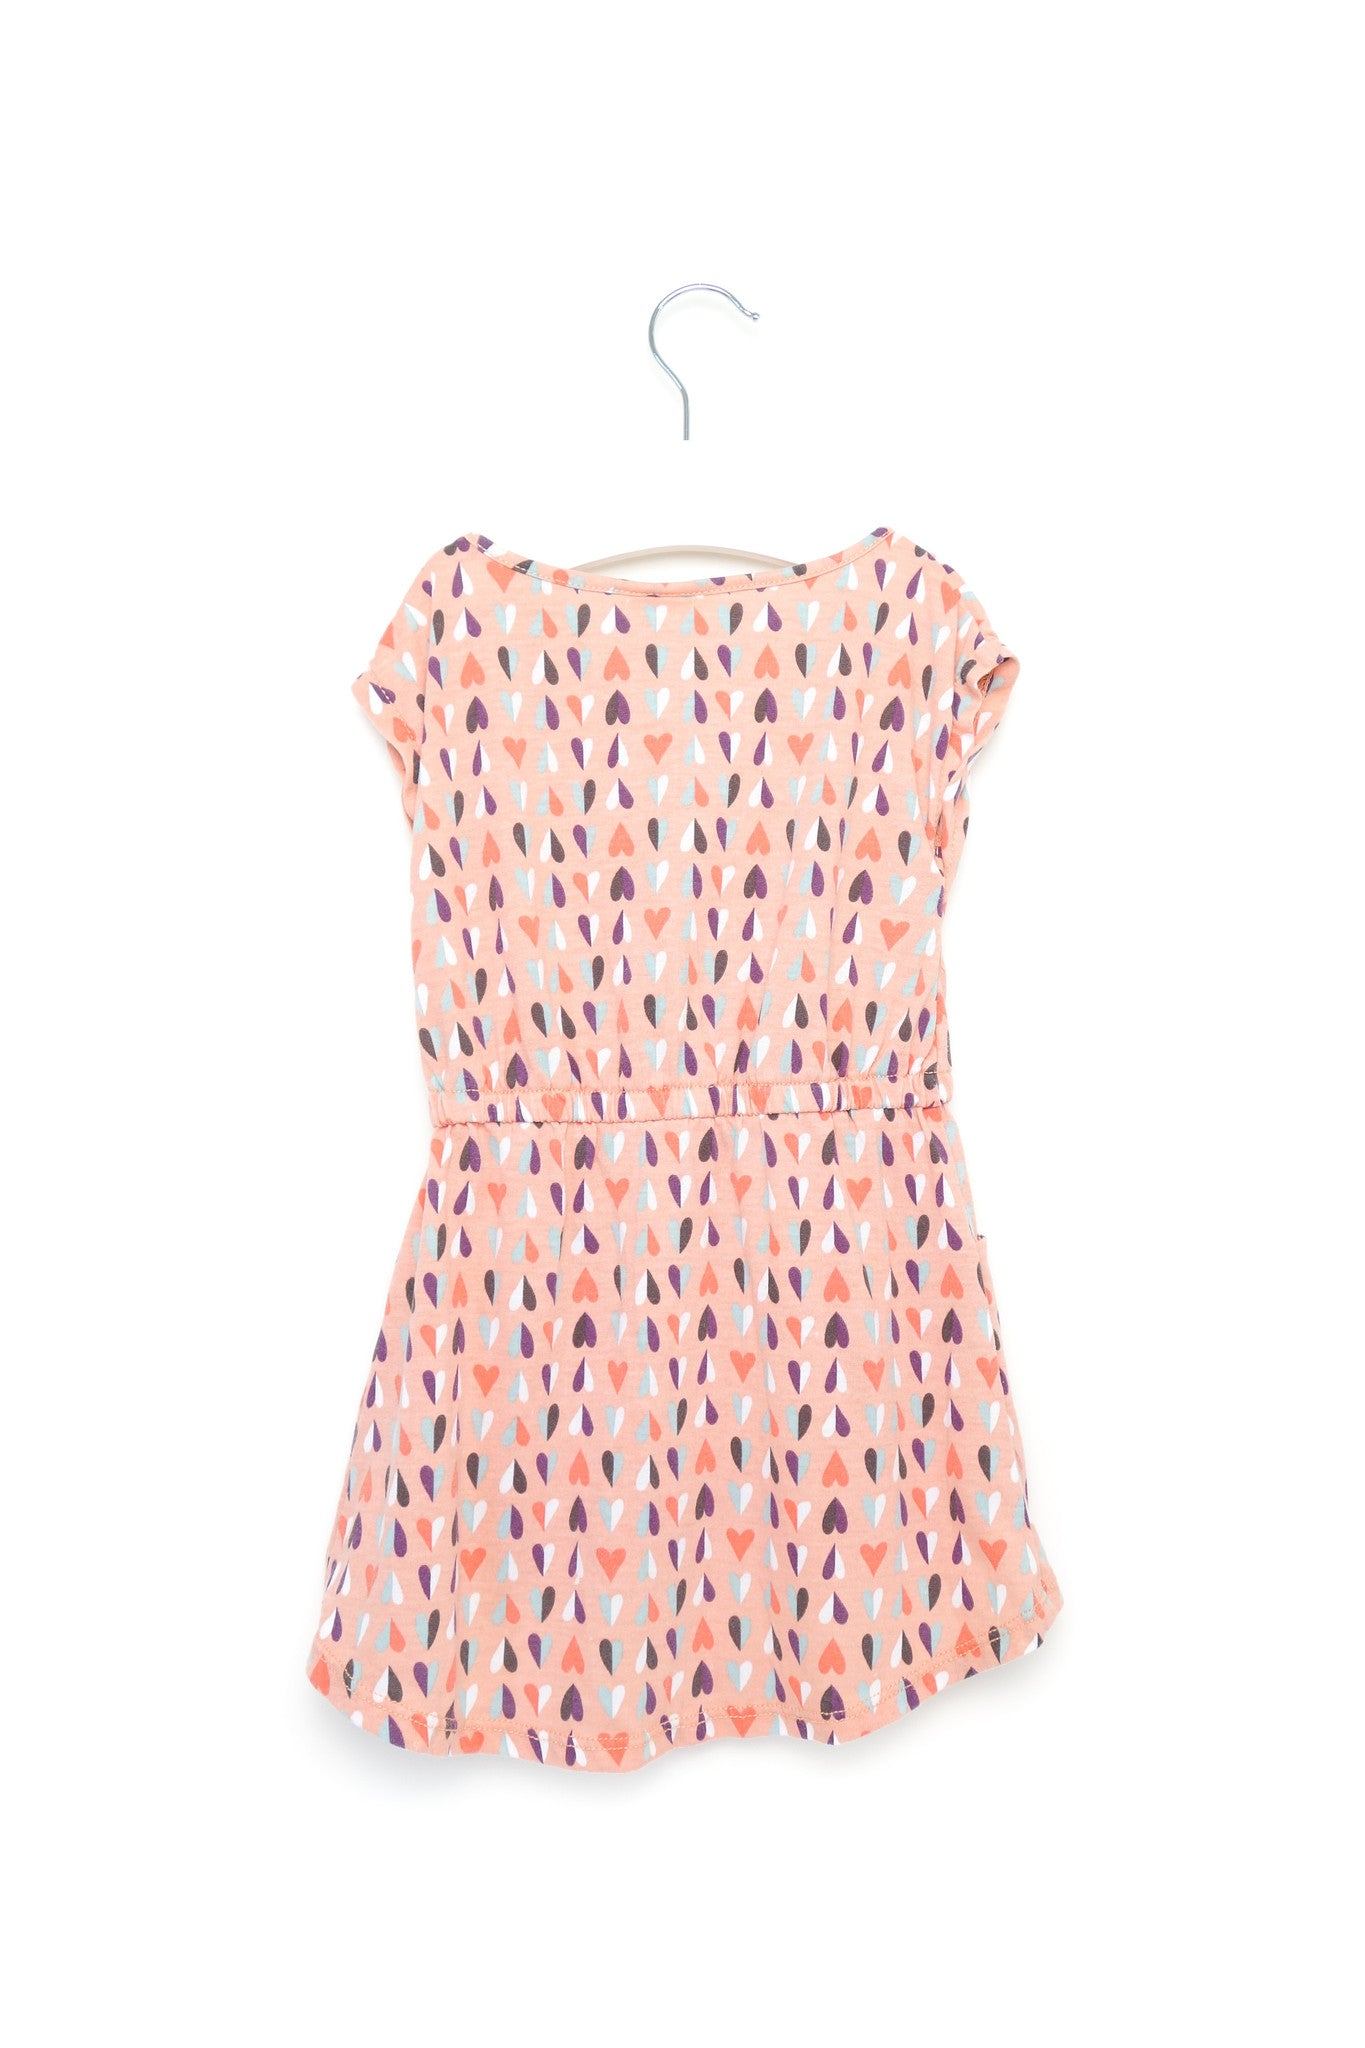 10001505~Dress 2T, Tucker & Tate at Retykle - Online Baby & Kids Clothing Up to 90% Off